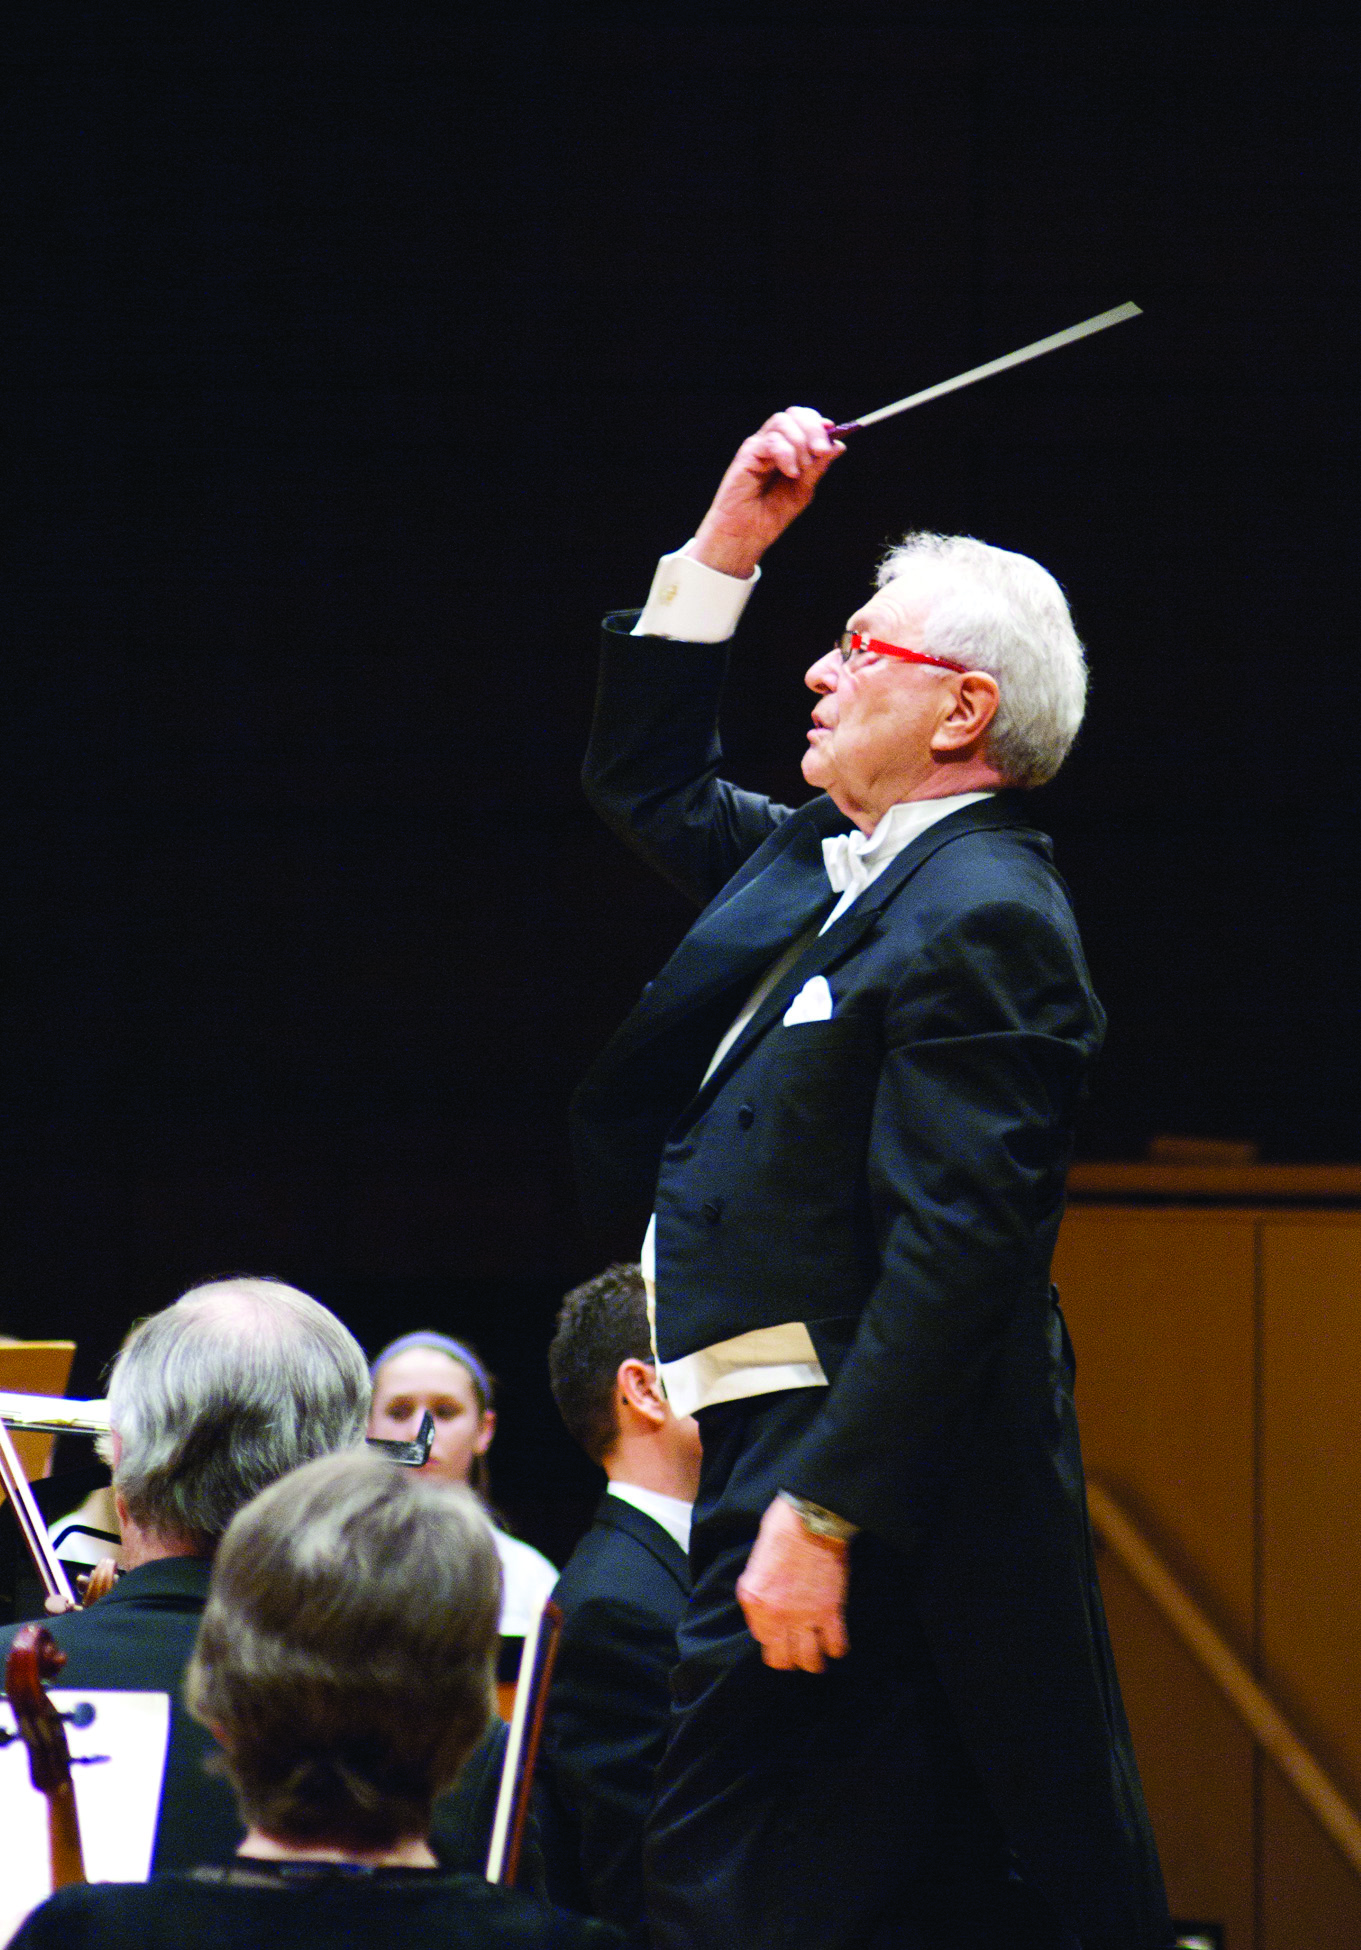 Maestro Vance George conducting with a baton